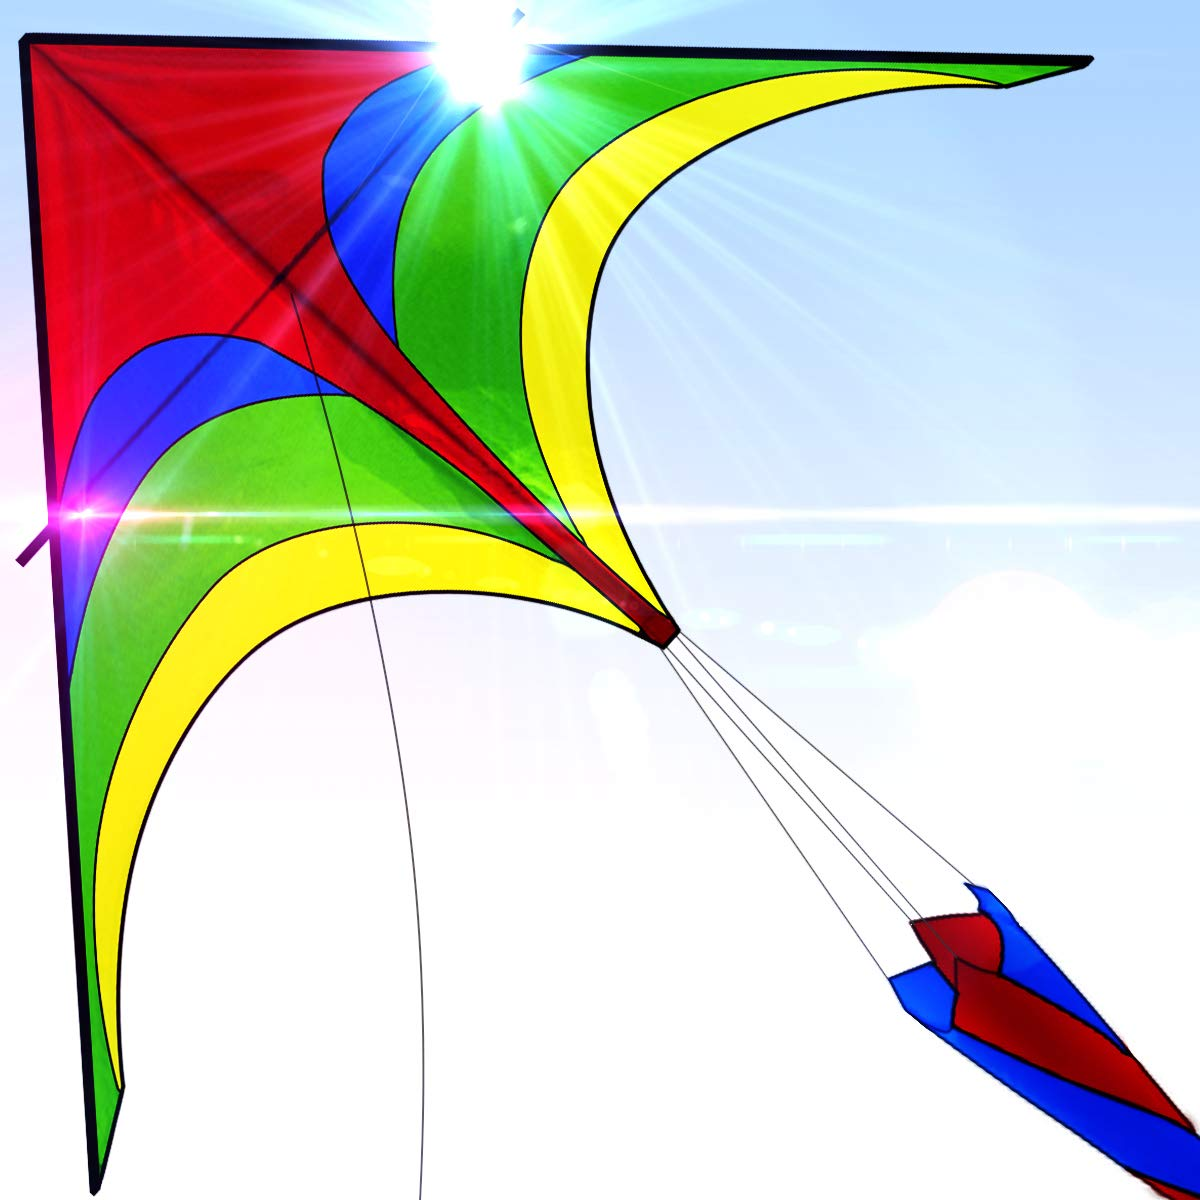 Easy To Fly Large Nylon Eagle Kite For Kids and Adults For Beach Trip & Outdoor Activities Perfect for Beginners Flies High in Light Breeze Flying String Line Included Big Flyer Childrens Toys by CHIPMUNKK